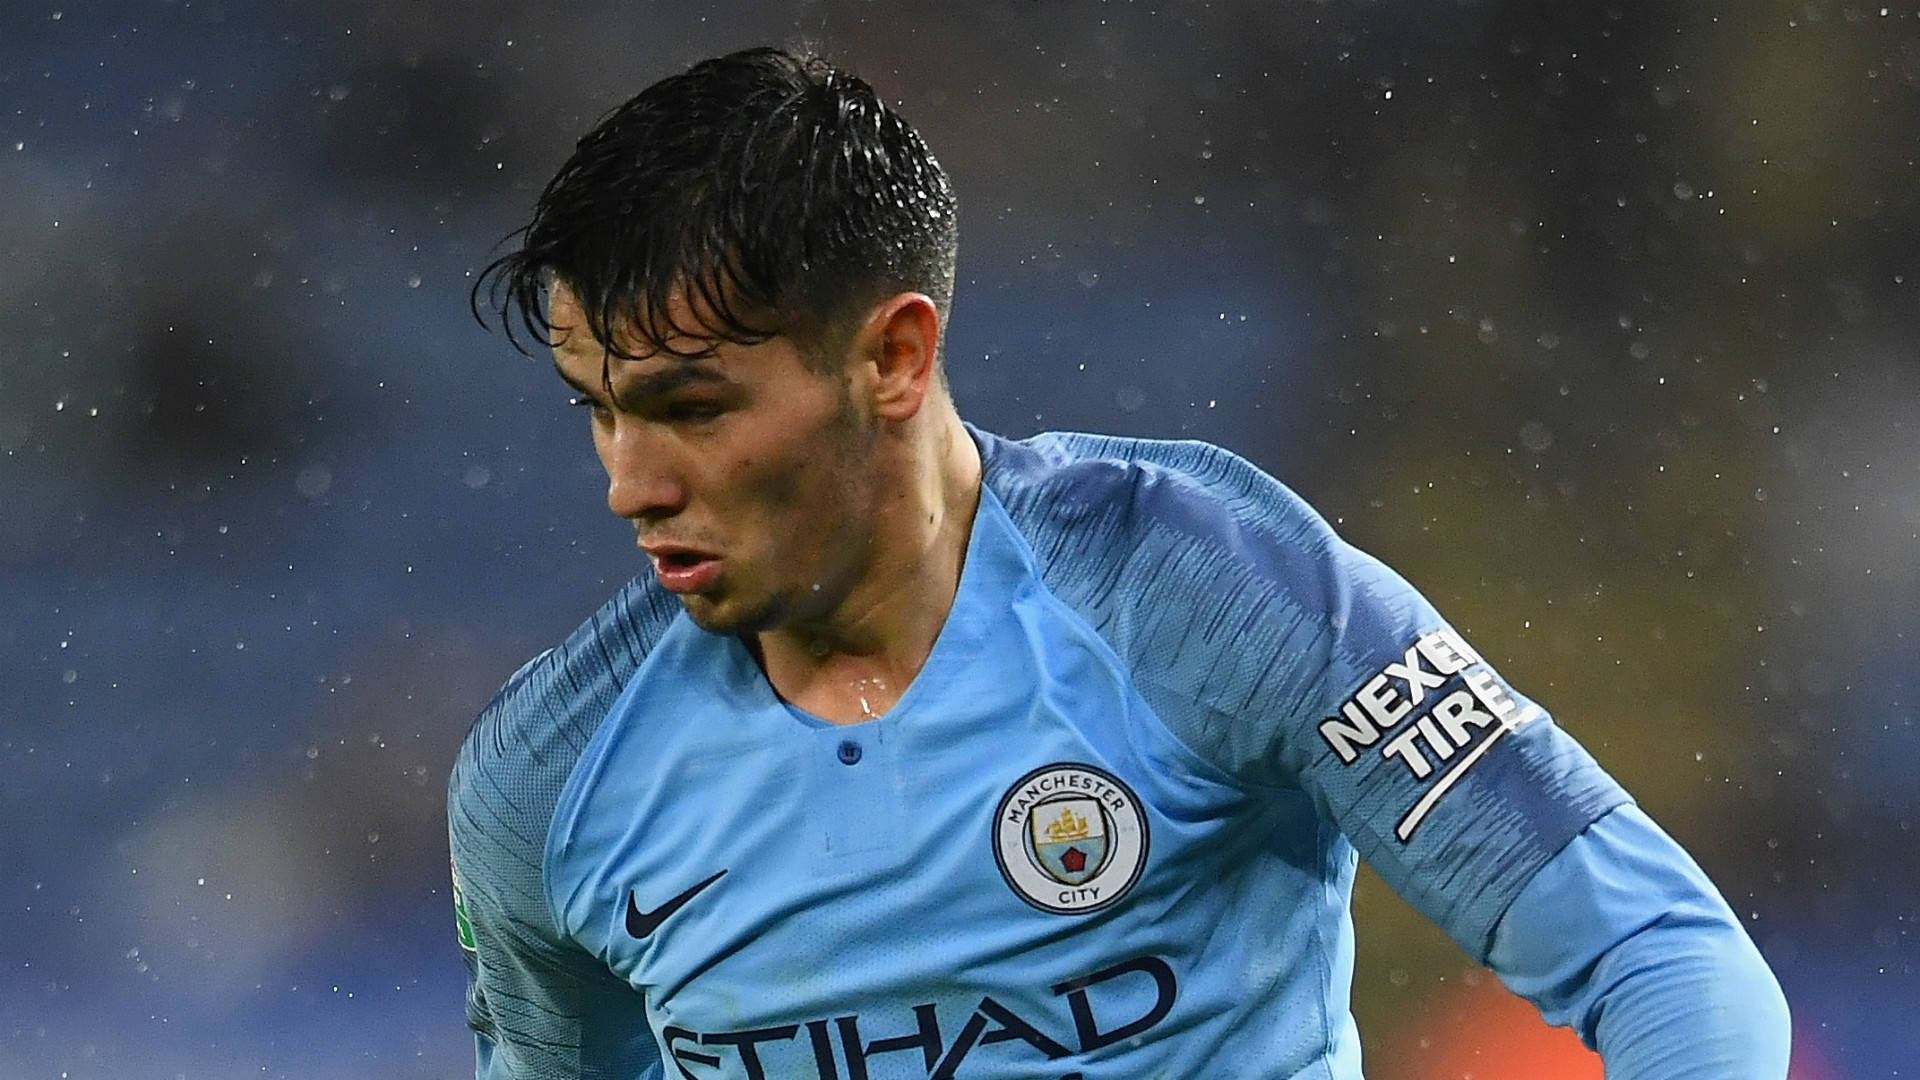 Real Madrid sign Brahim Diaz from Manchester City